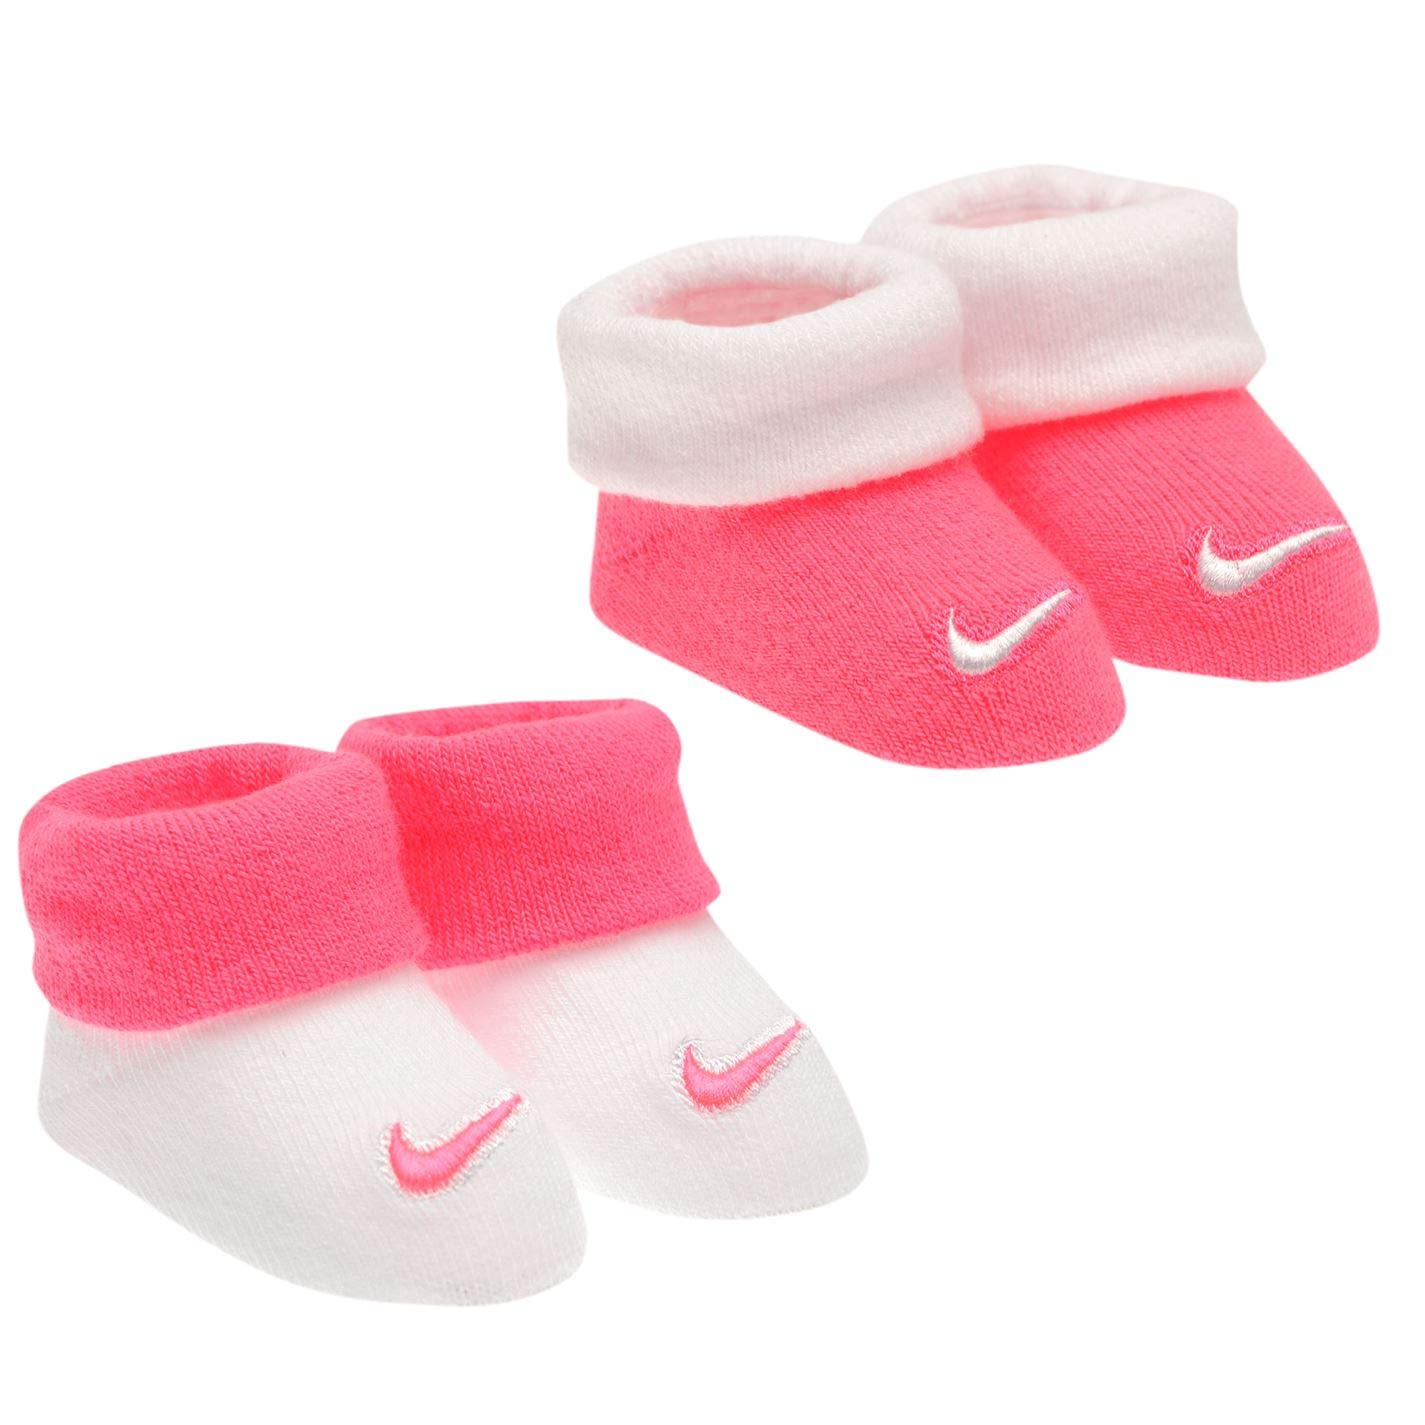 80d3c6454bed6 Nike